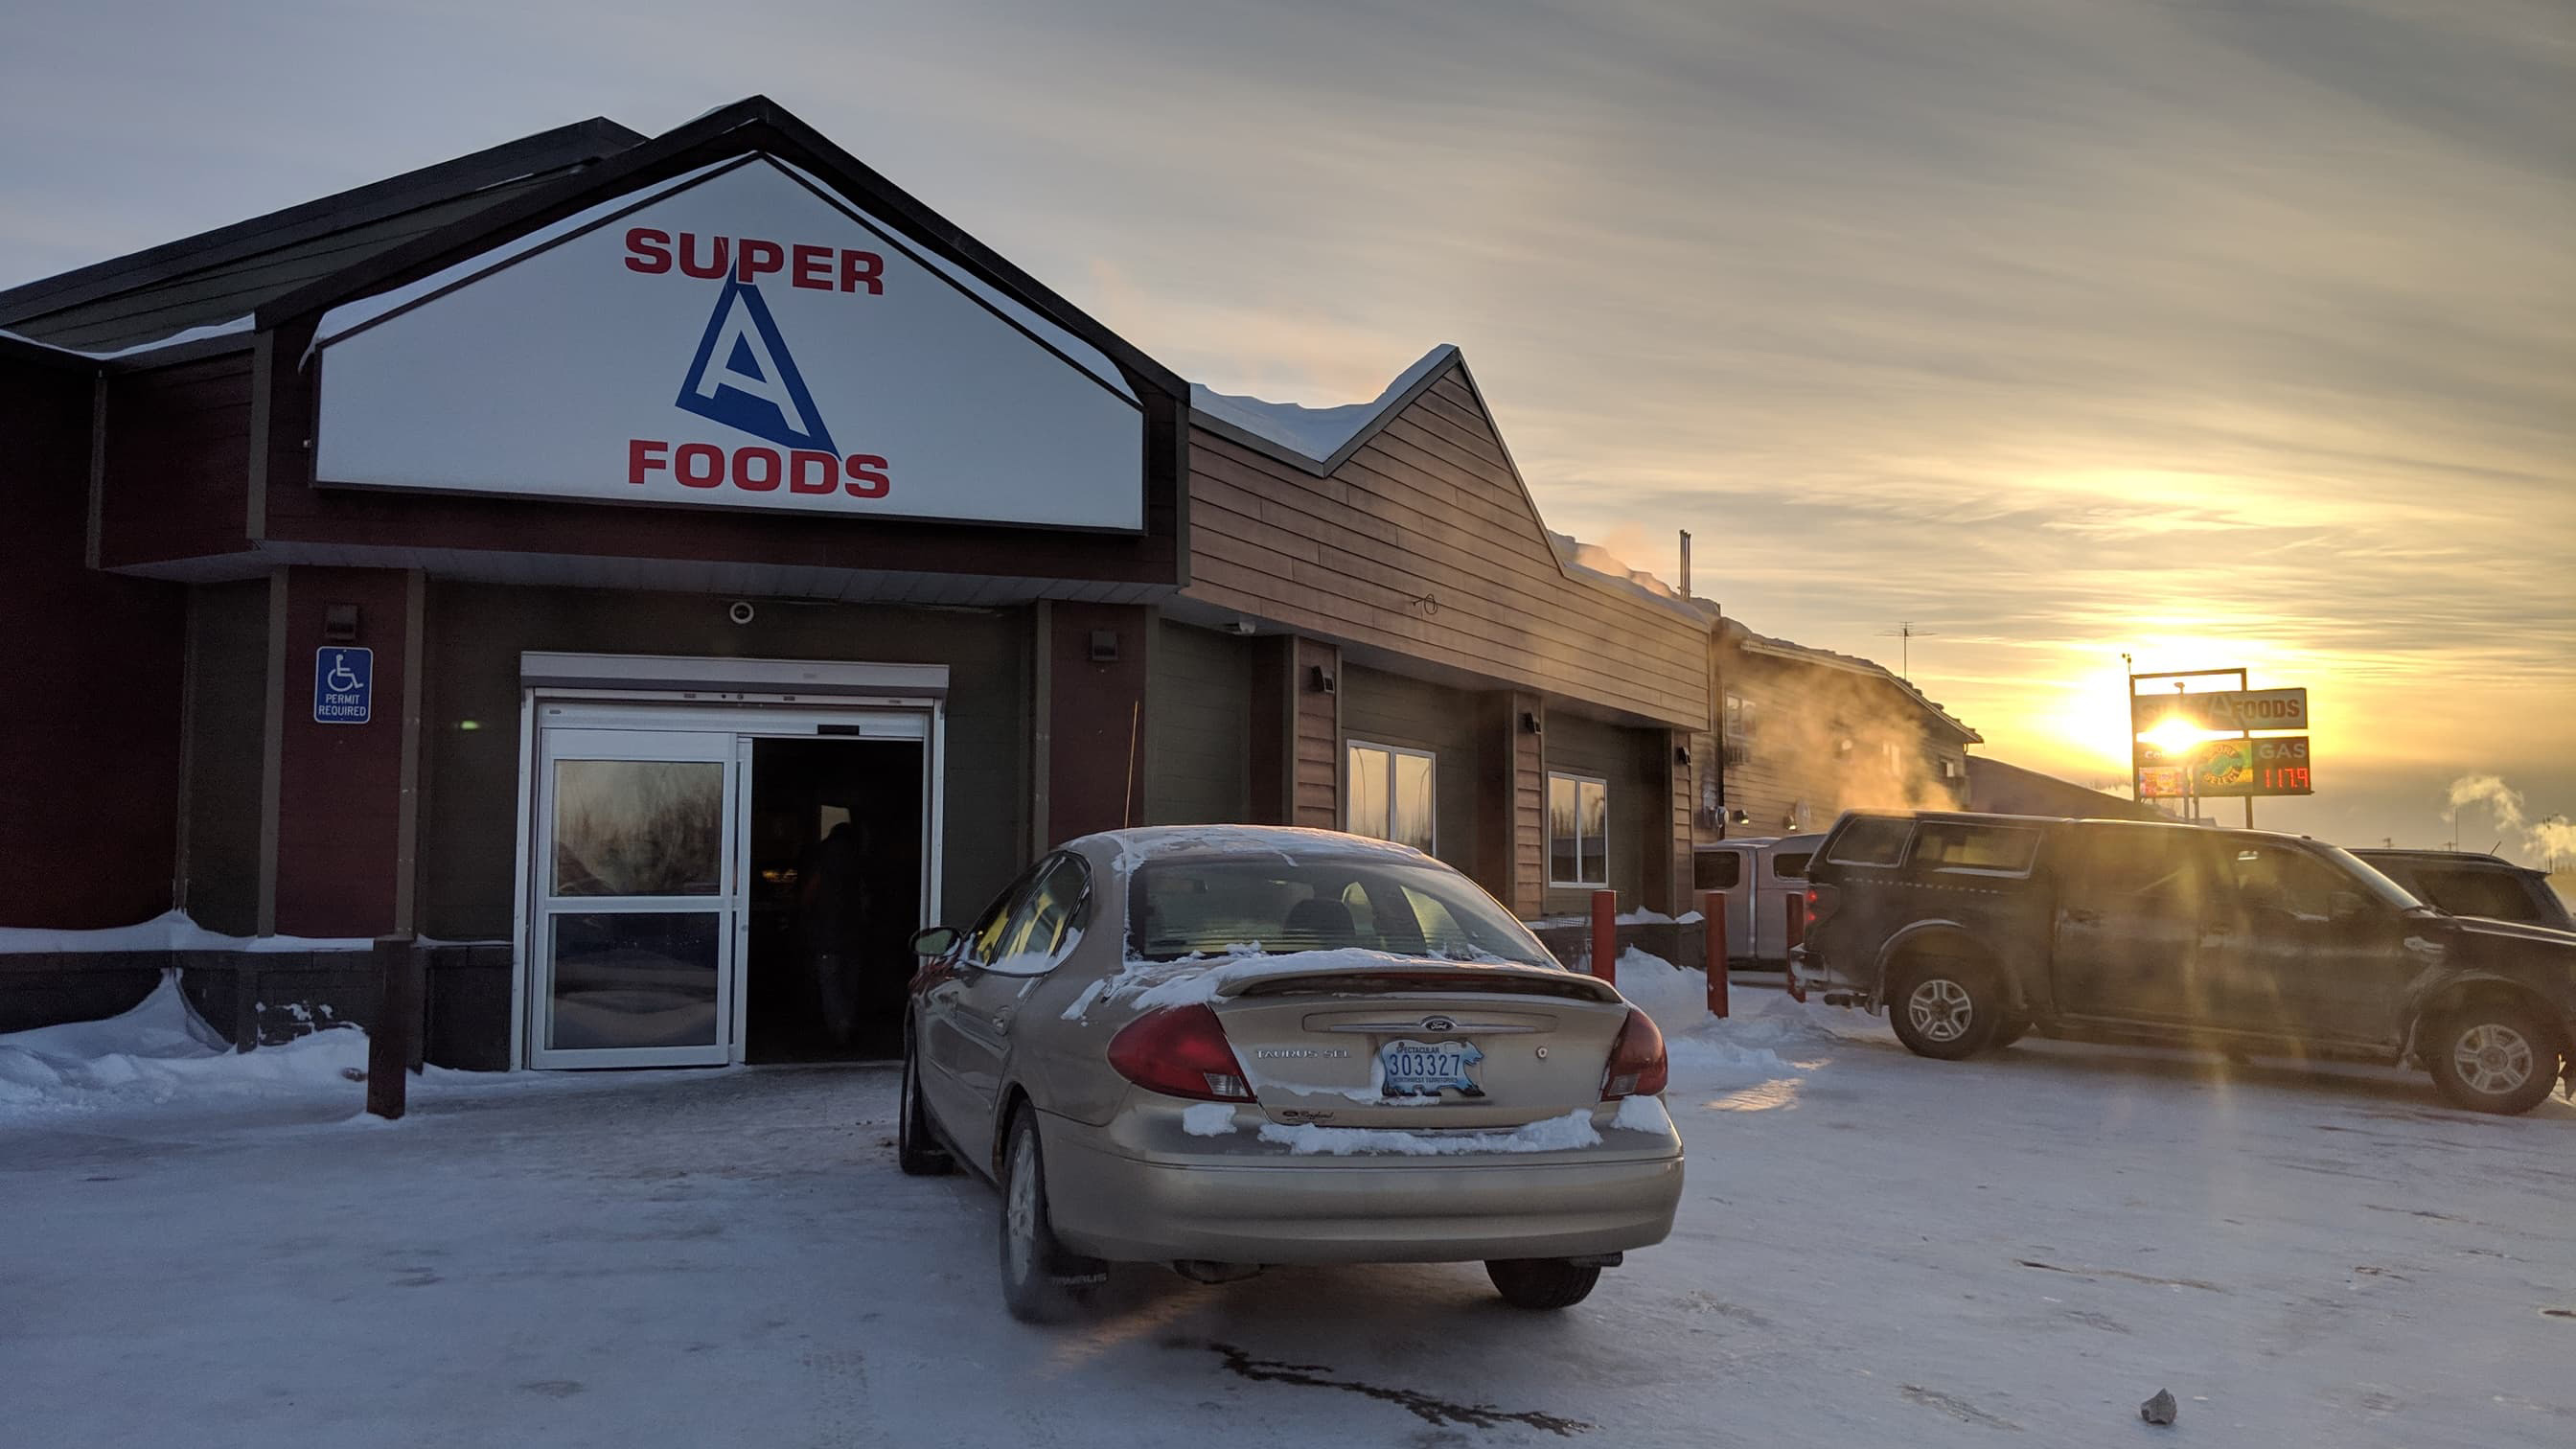 A file photo of Super A Foods in Hay River in February 2019. Sarah Pruys/Cabin Radio